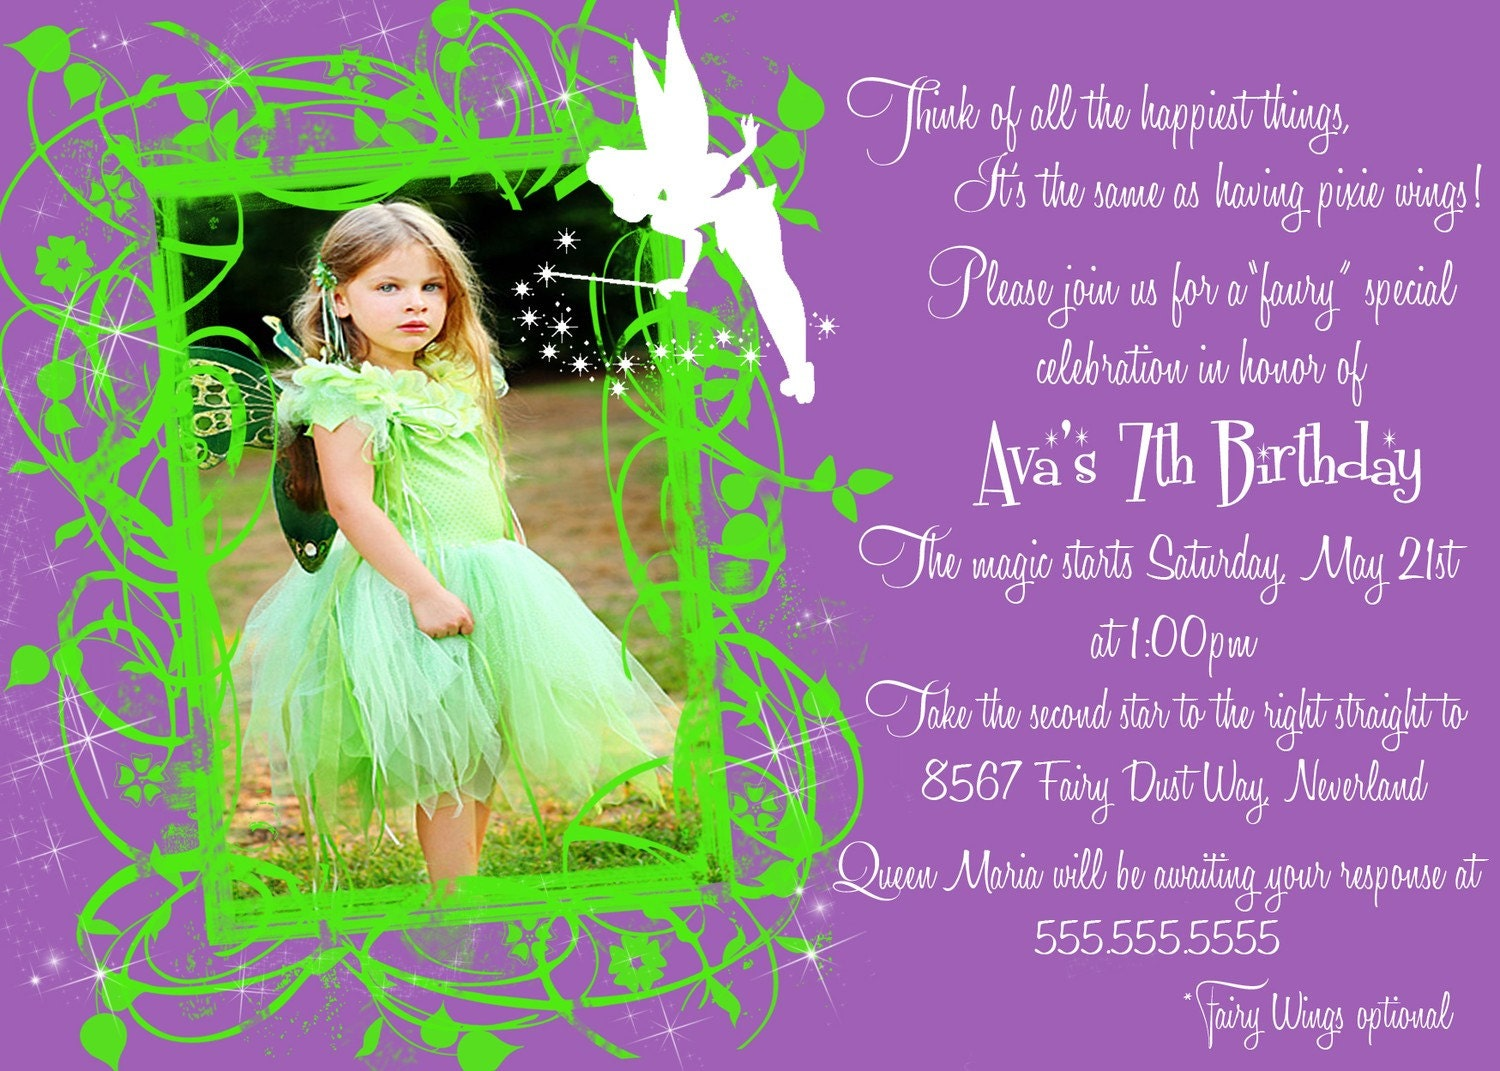 40th birthday ideas birthday invitation templates tinkerbell photo birthday invitations stopboris Choice Image